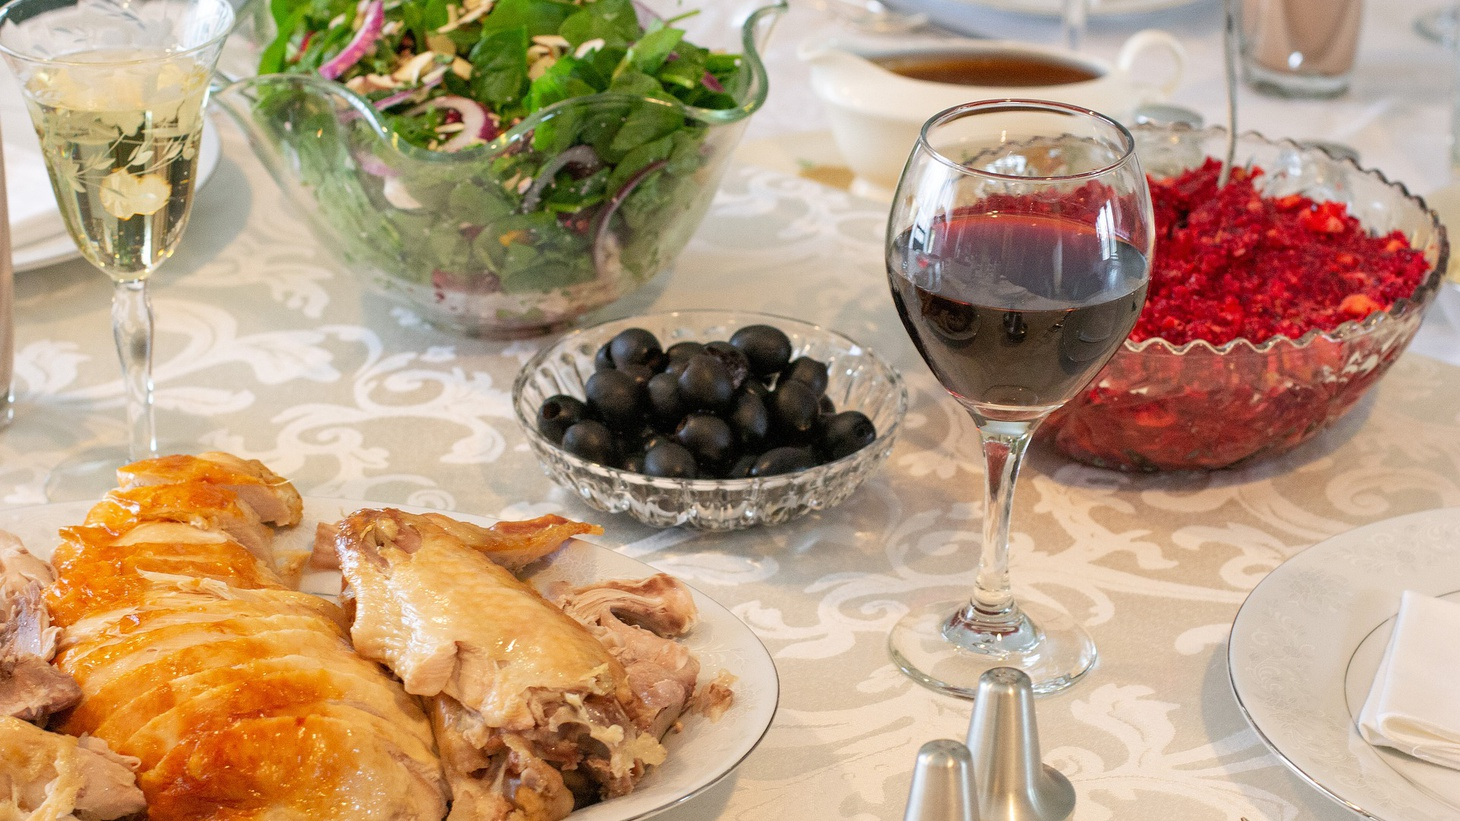 Don't be afraid to fail when cooking this Thanksgiving, suggests Good Food host Evan Kleiman.